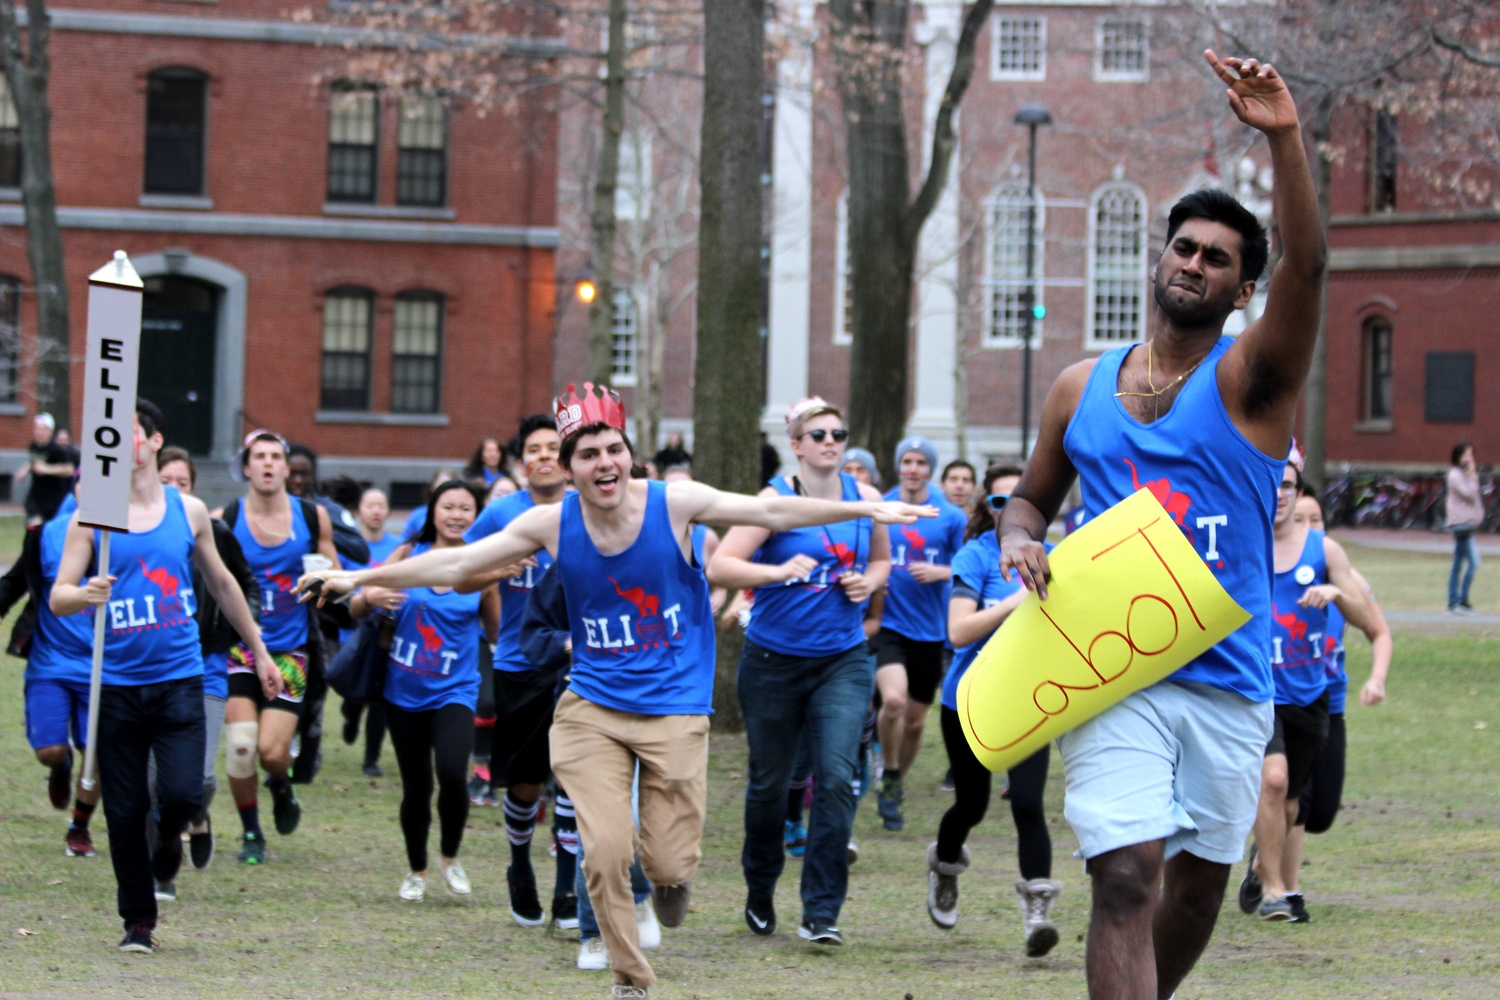 Members of Eliot House charge into Harvard Yard pn Housing Day.